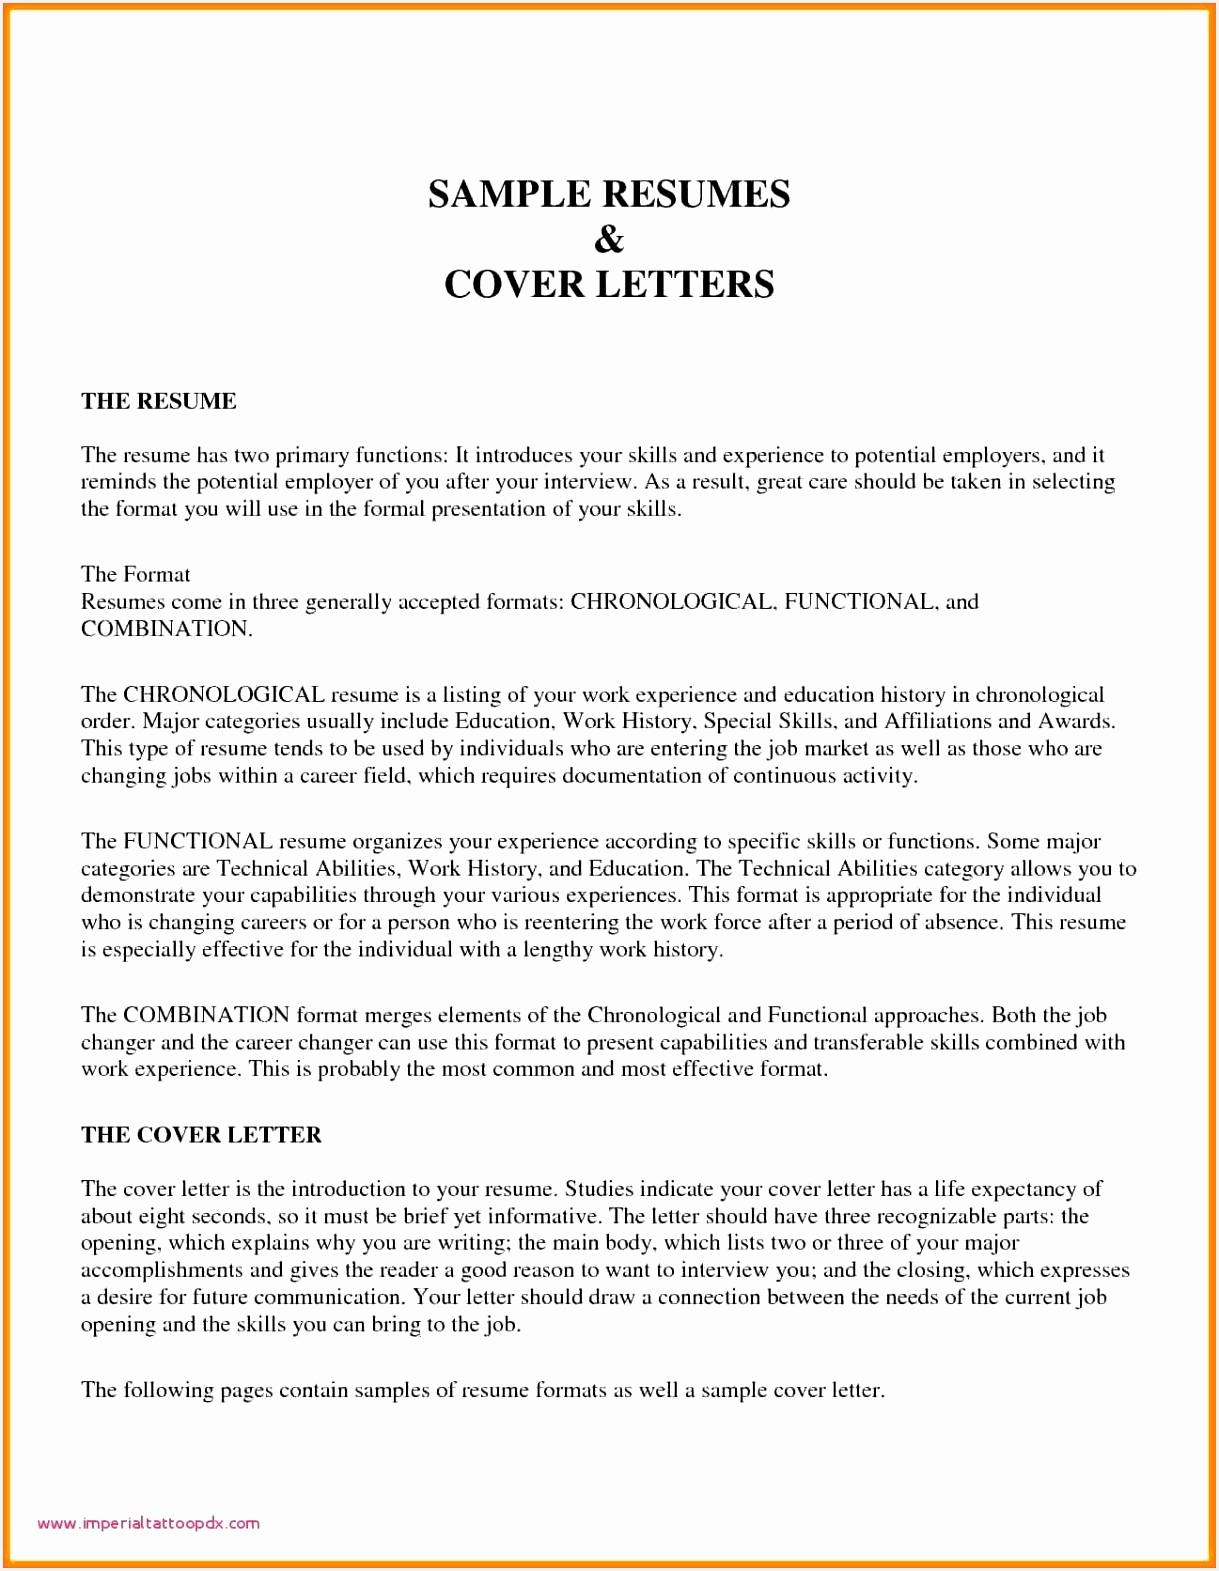 Sample Resumes for Lawyers Ffeqr Fresh New Examples attorney Letter format Of 4 Sample Resumes for Lawyers